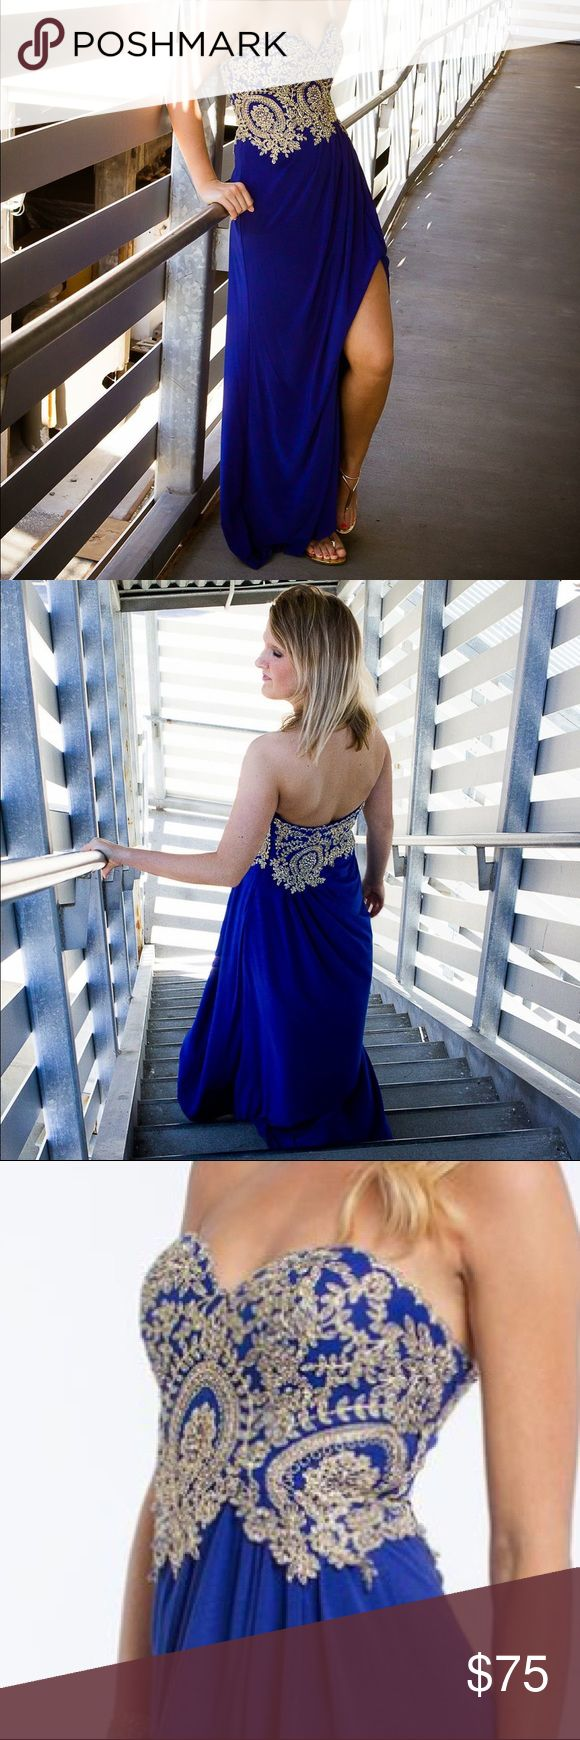 Sale~Camille La Vie strapless long dress size 0 Camille La Vie strapless long prom dress size 0 with gold motif and a side slit. Bust 14 1/2 in, waist 12 in, length 50 in. 100% polyester camilla la vie Dresses Prom